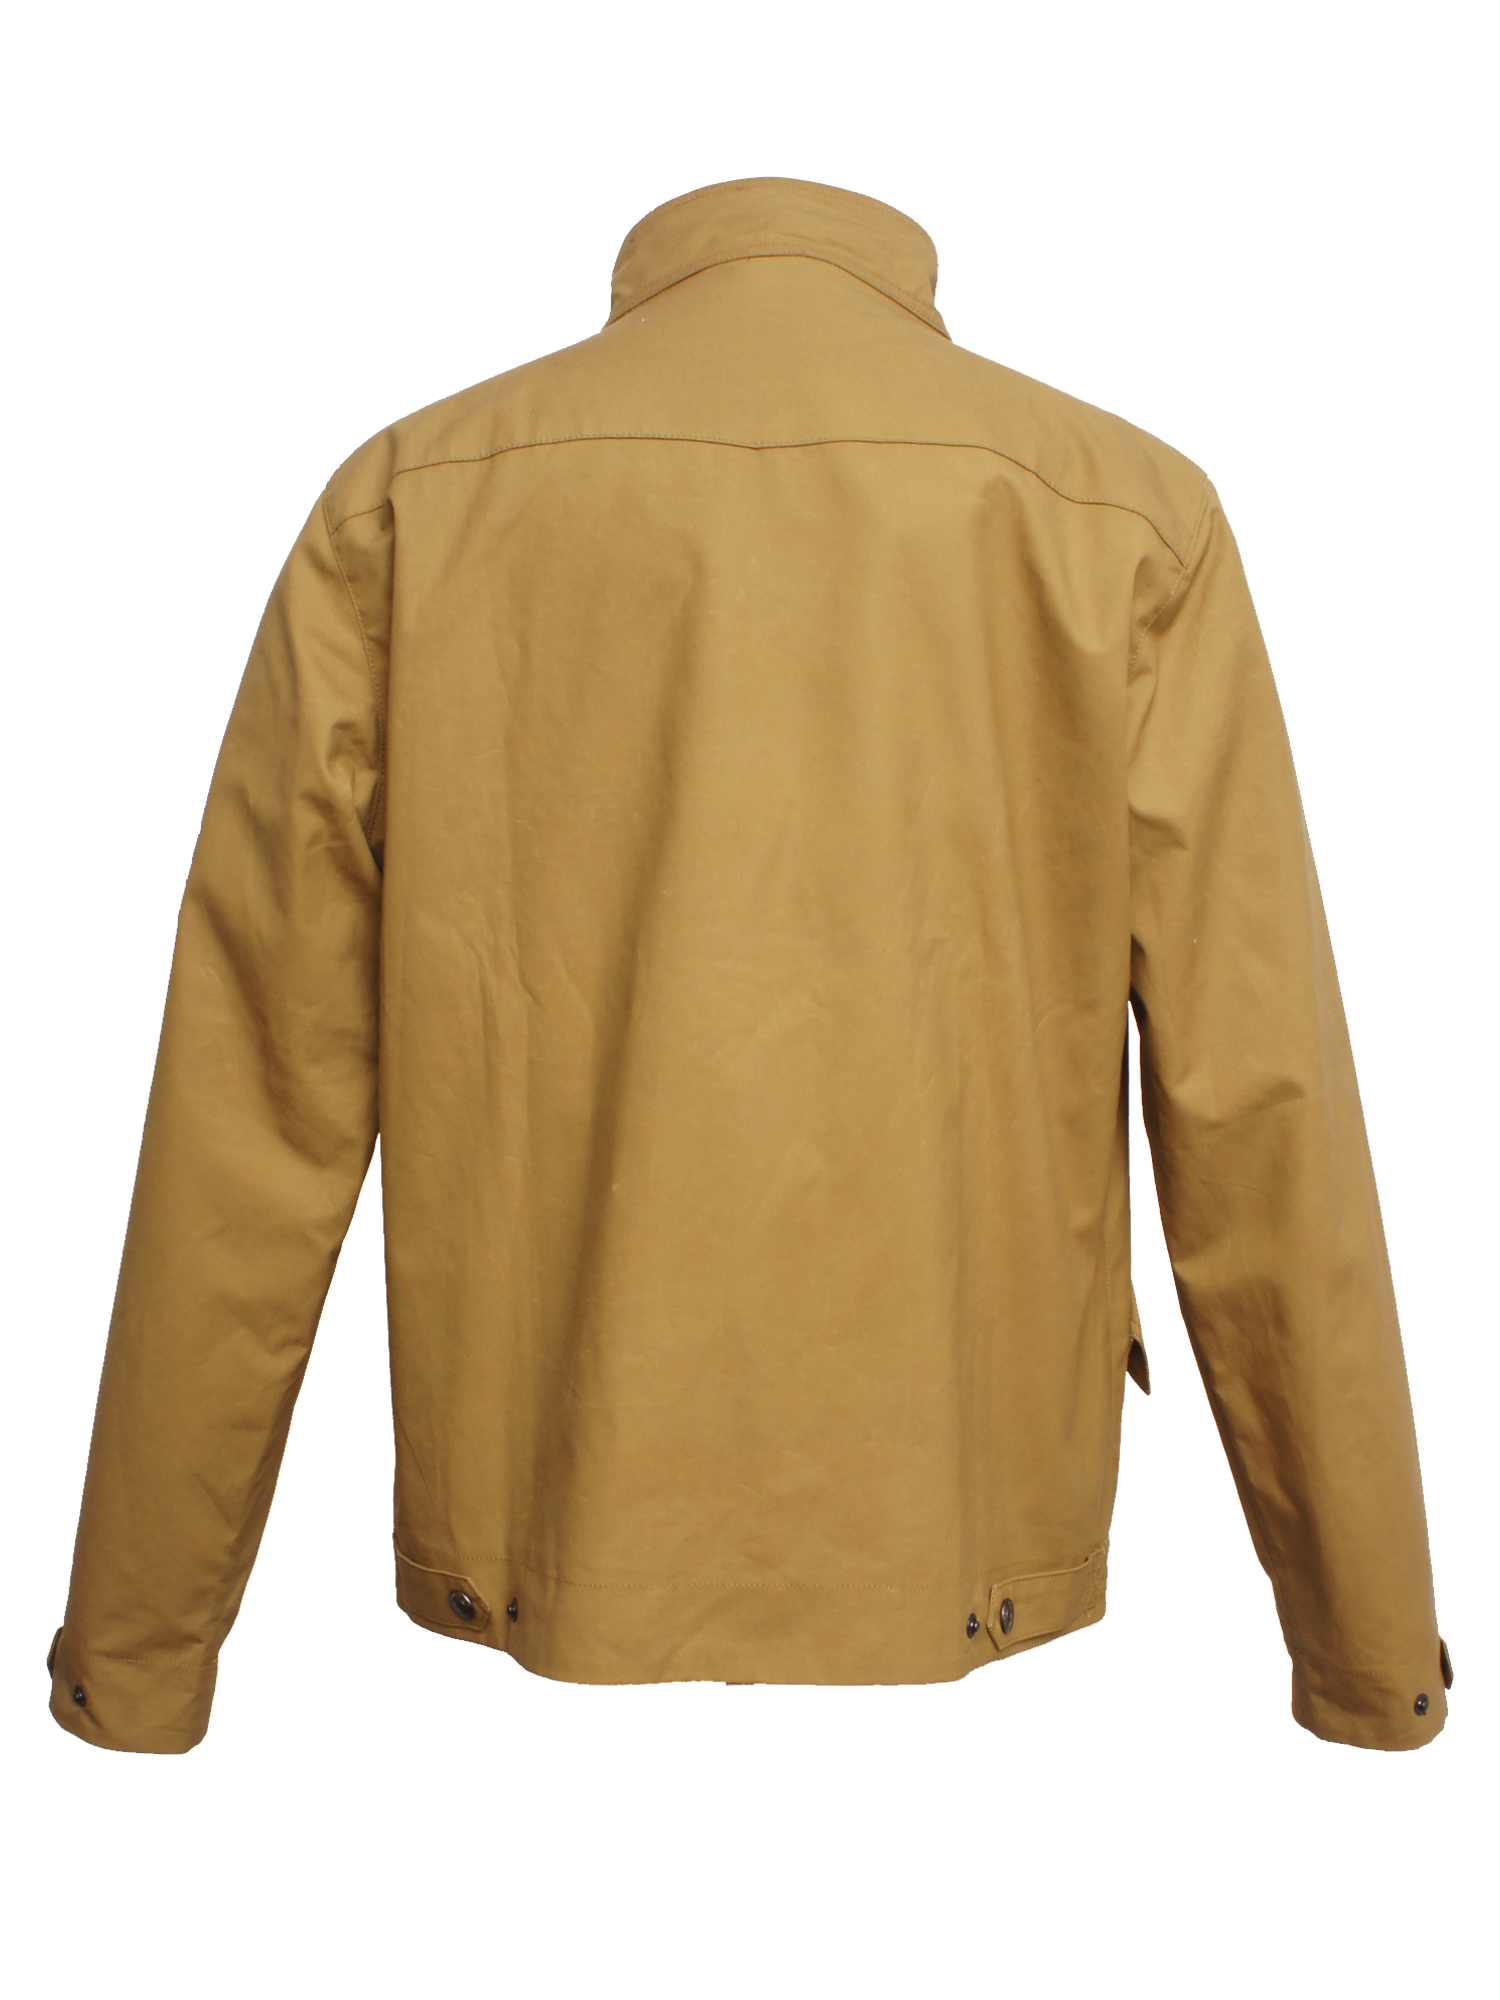 K6002 CASTOR Mens Waxed Cotton Blouson